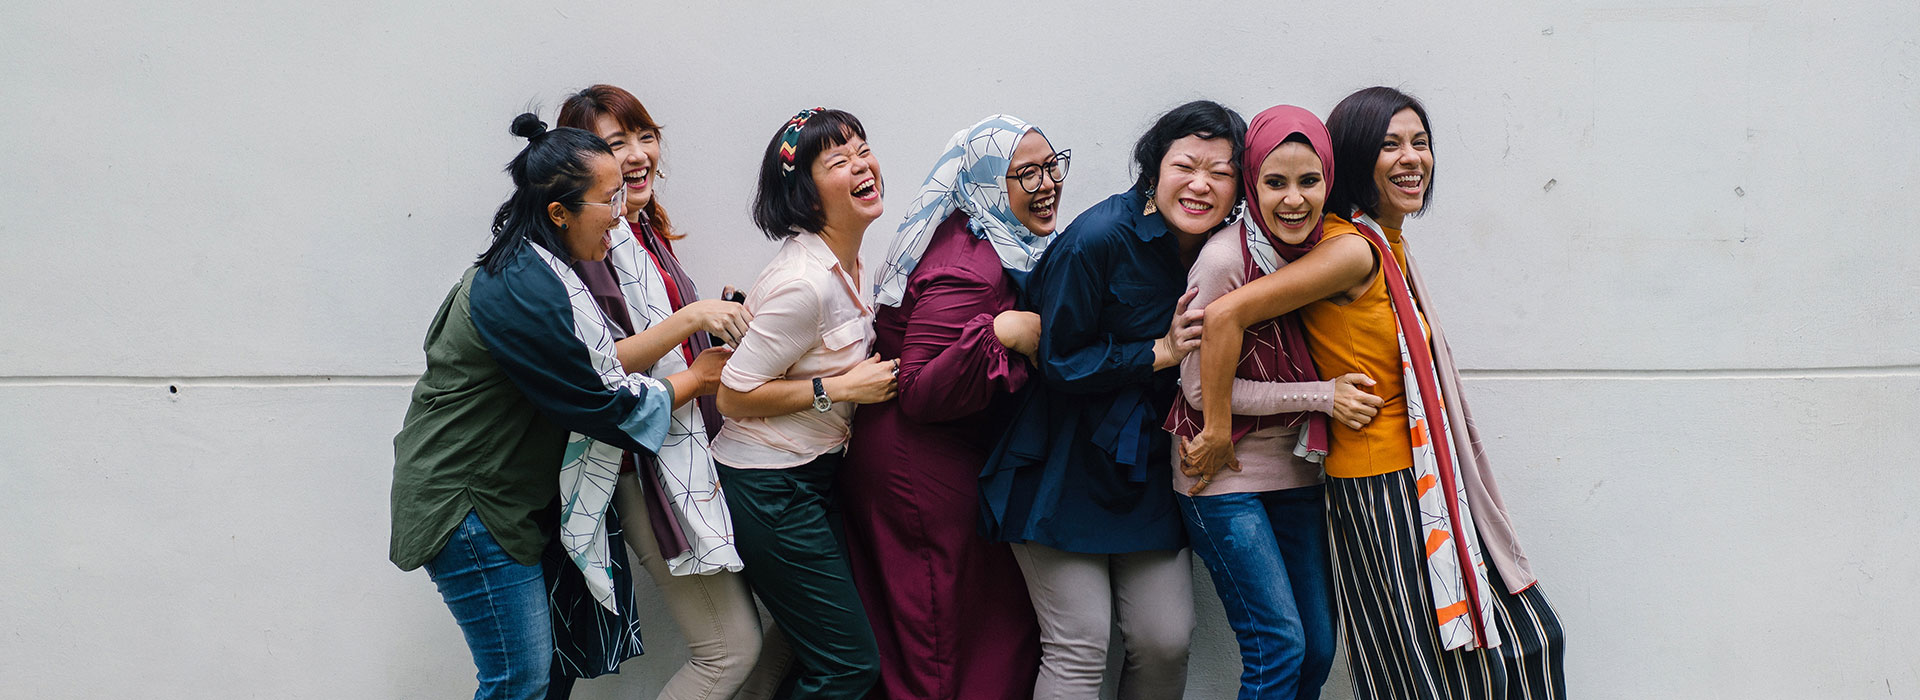 A group of culturally diverse women candidly hugging and laughing.